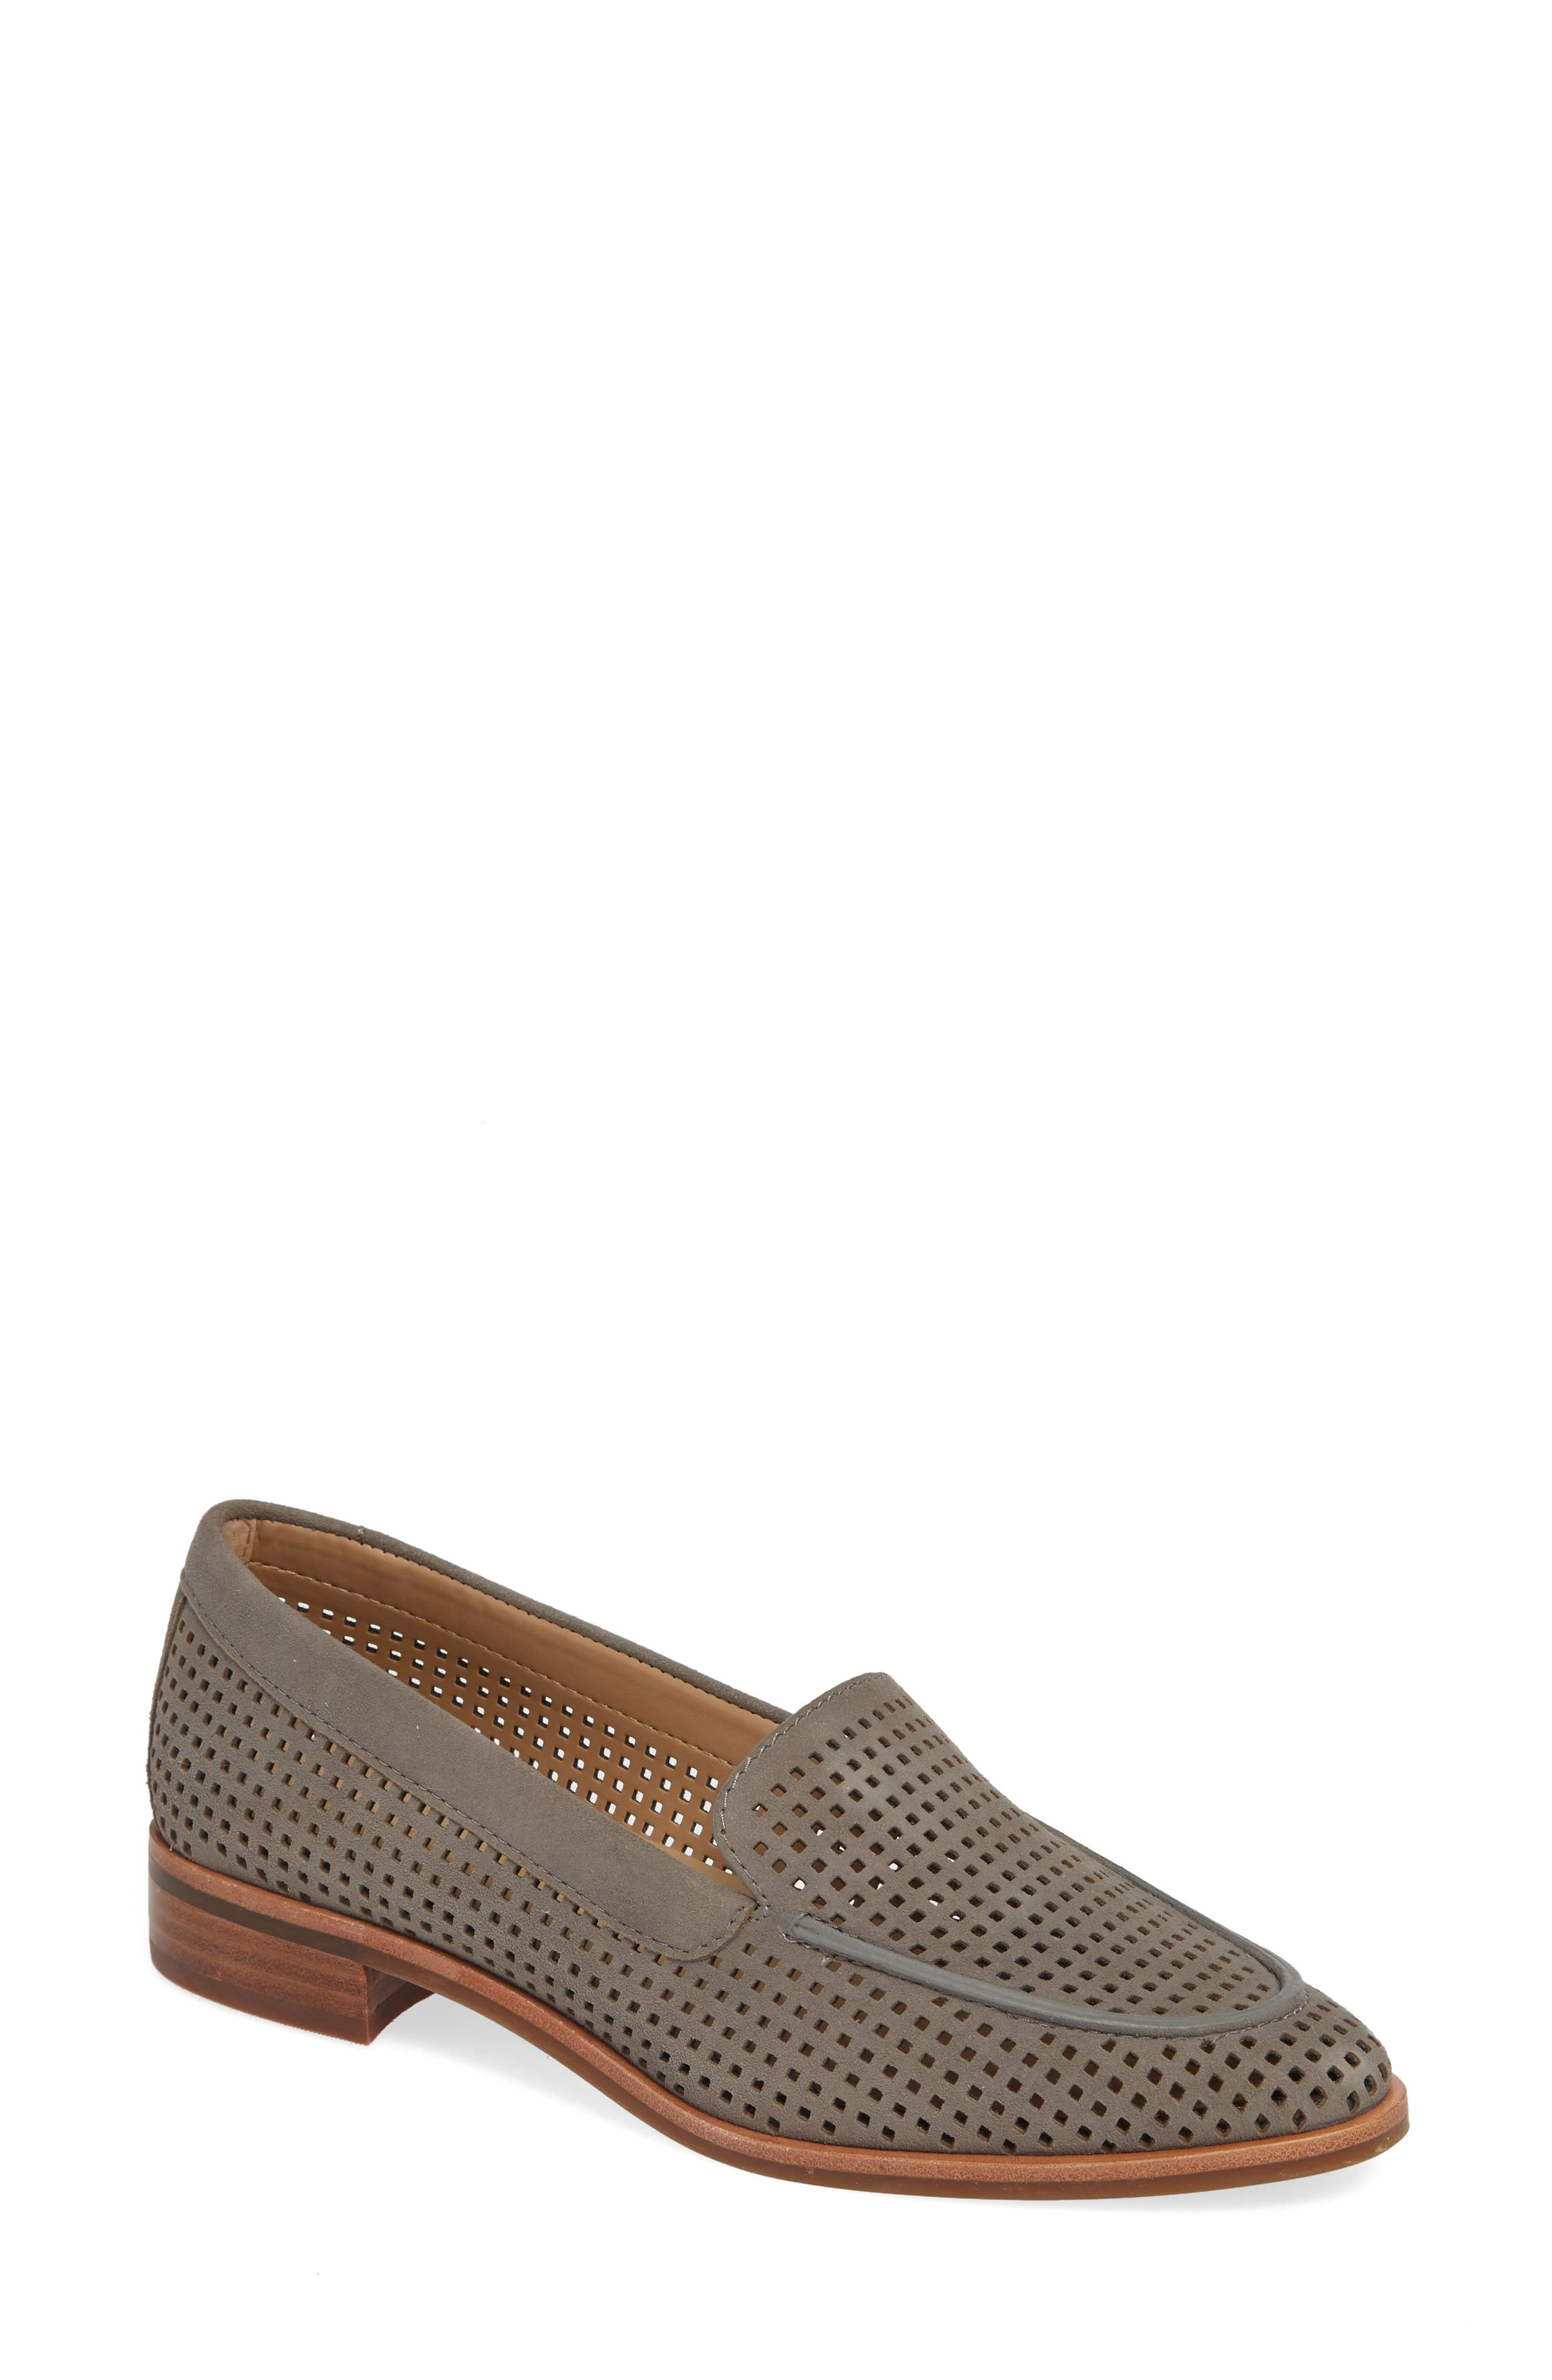 The Flexx Chelsea Peforated Loafer- Blue